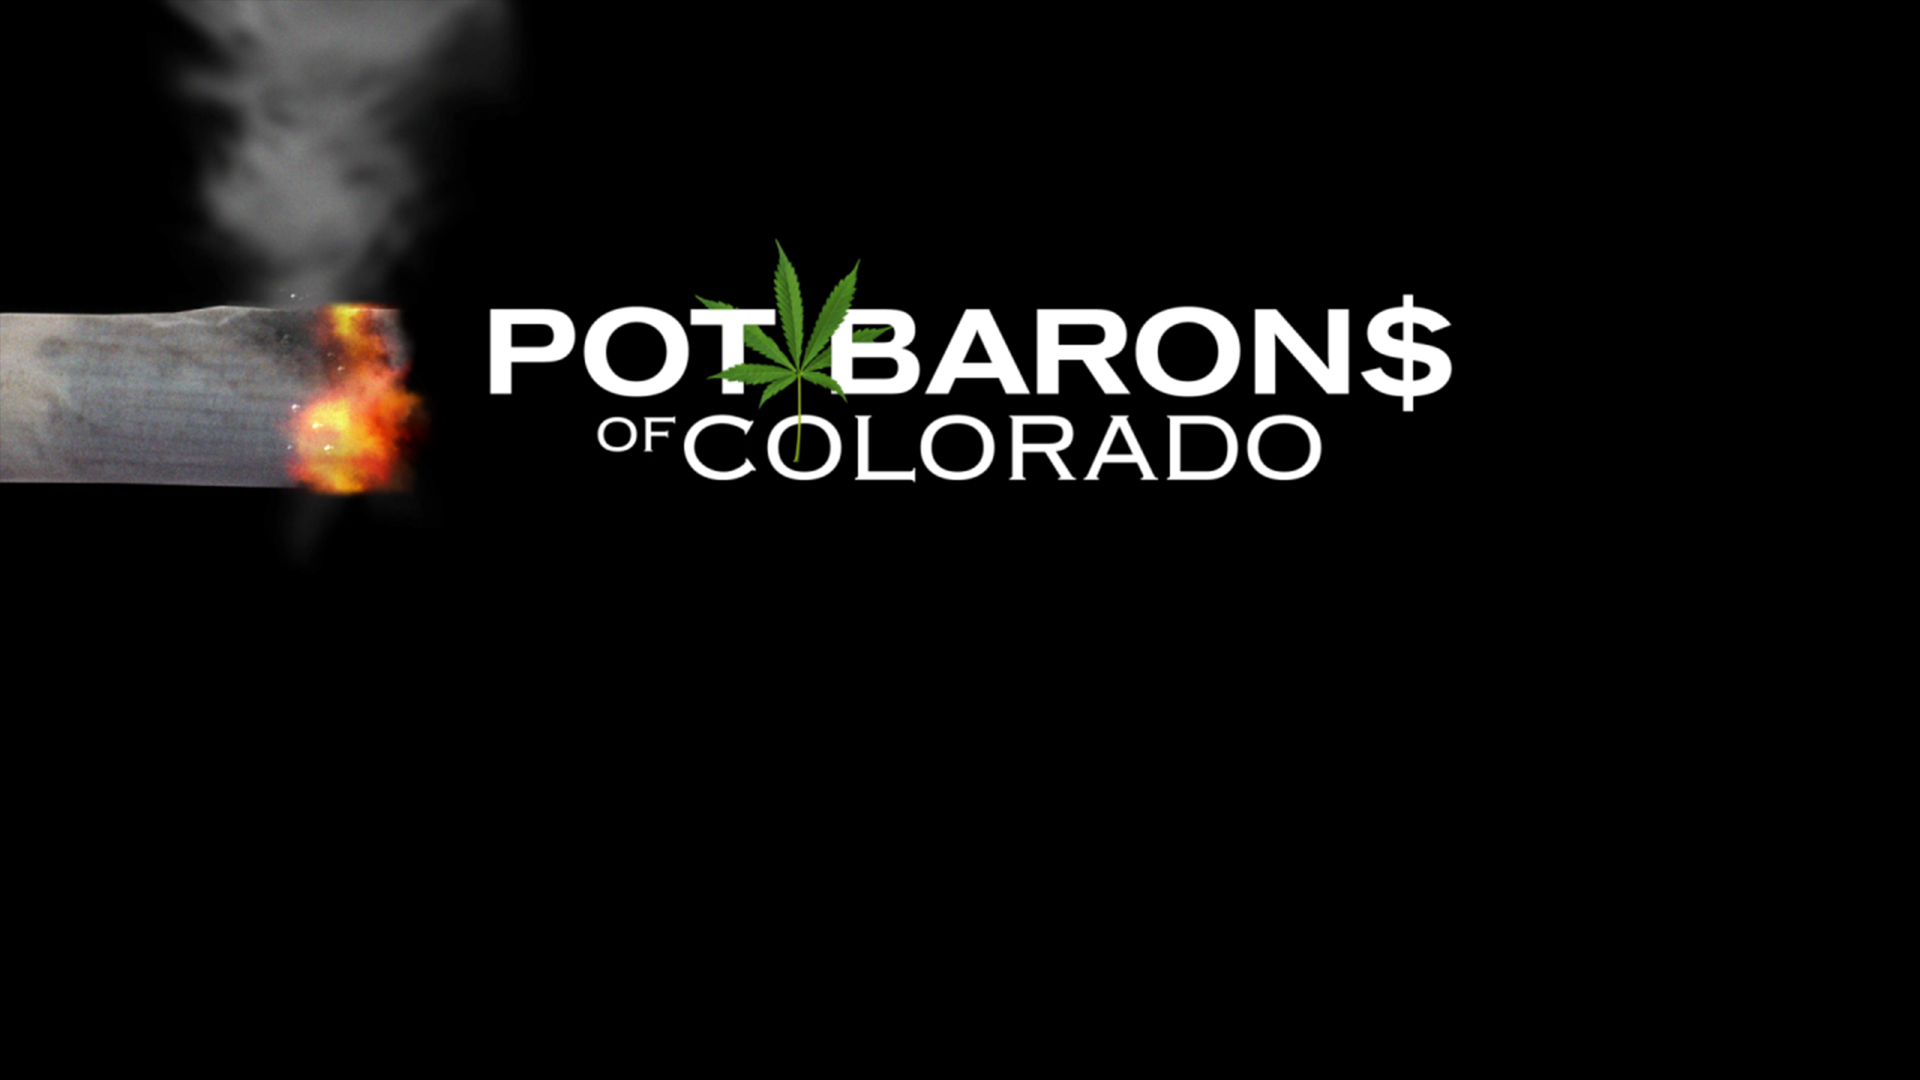 Pot Barons of Colorado